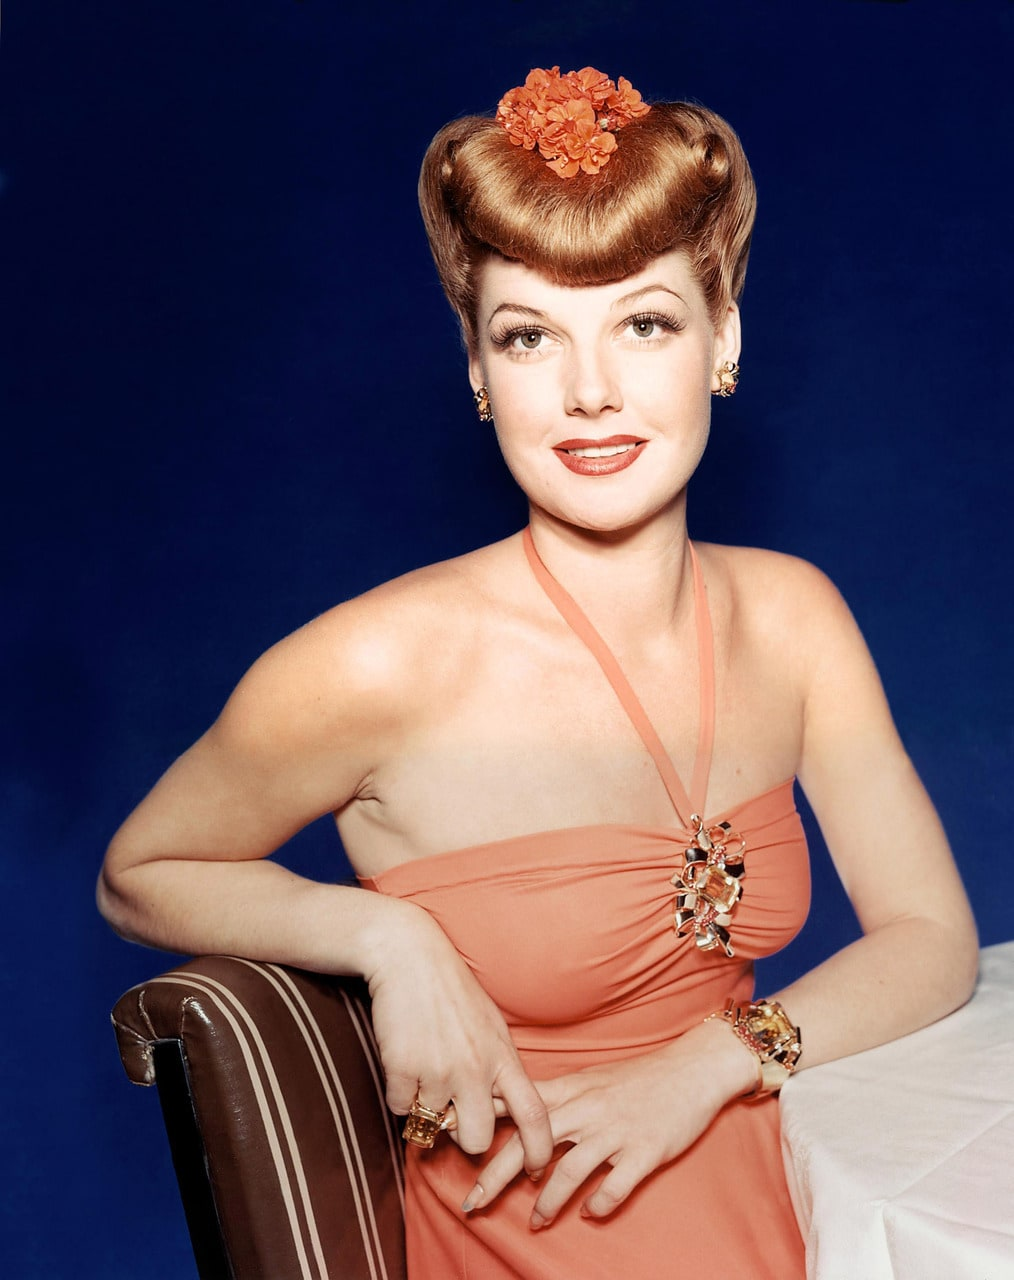 ann sheridan instagramann sheridan instagram, ann sheridan actress, ann sheridan wiki, ann sheridan facebook, ann sheridan imdb, ann sheridan measurements, ann sheridan son, ann sheridan obituary, ann sheridan grave, ann sheridan weight loss, ann sheridan wcnc, ann sheridan relationships, ann sheridan feet, ann sheridan pinup, ann sheridan smoking